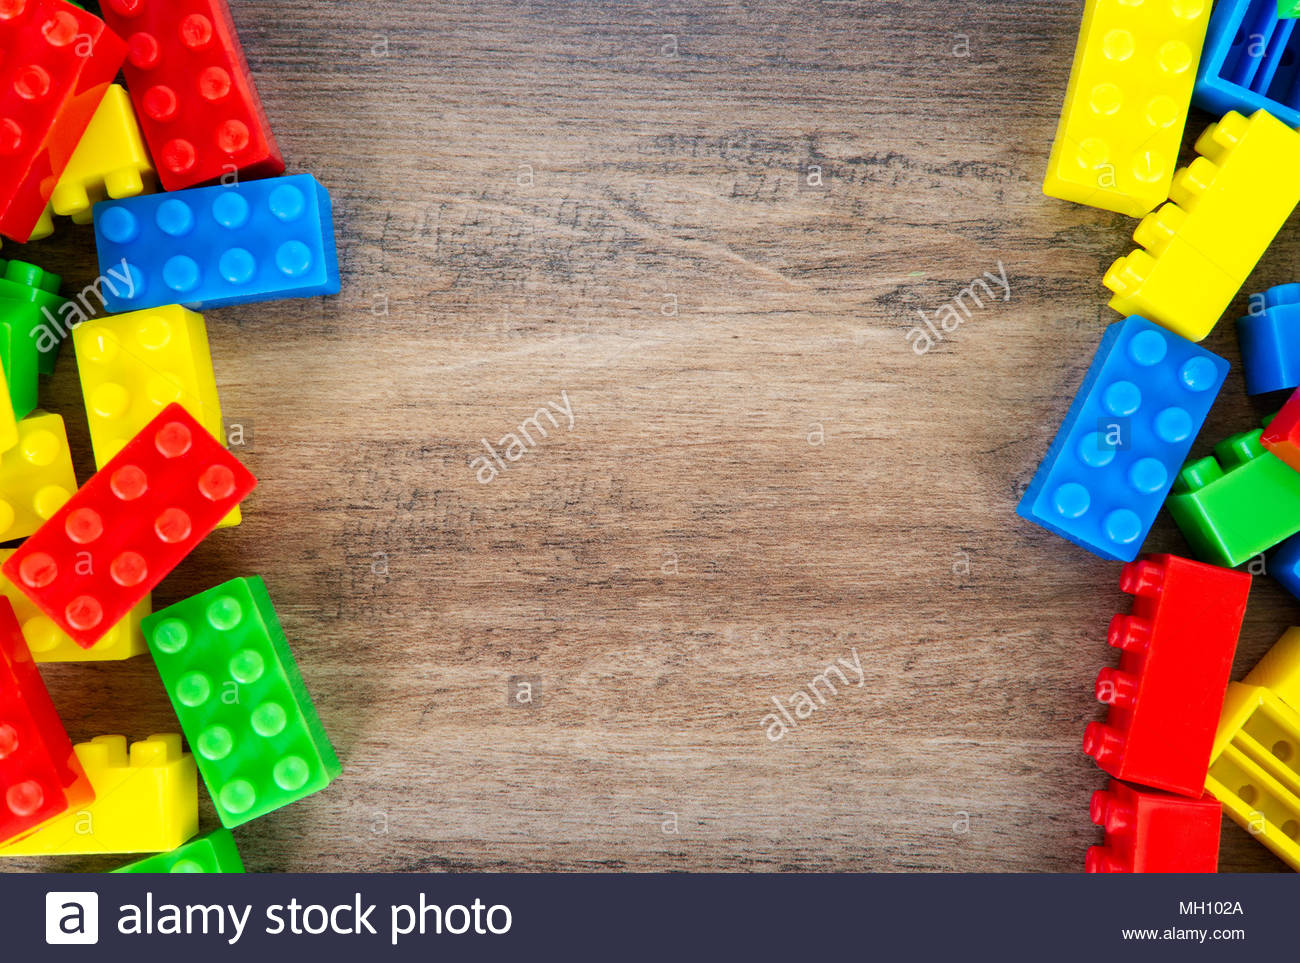 Colorful toy building blocks on wood background Stock Photo   Alamy 1300x963